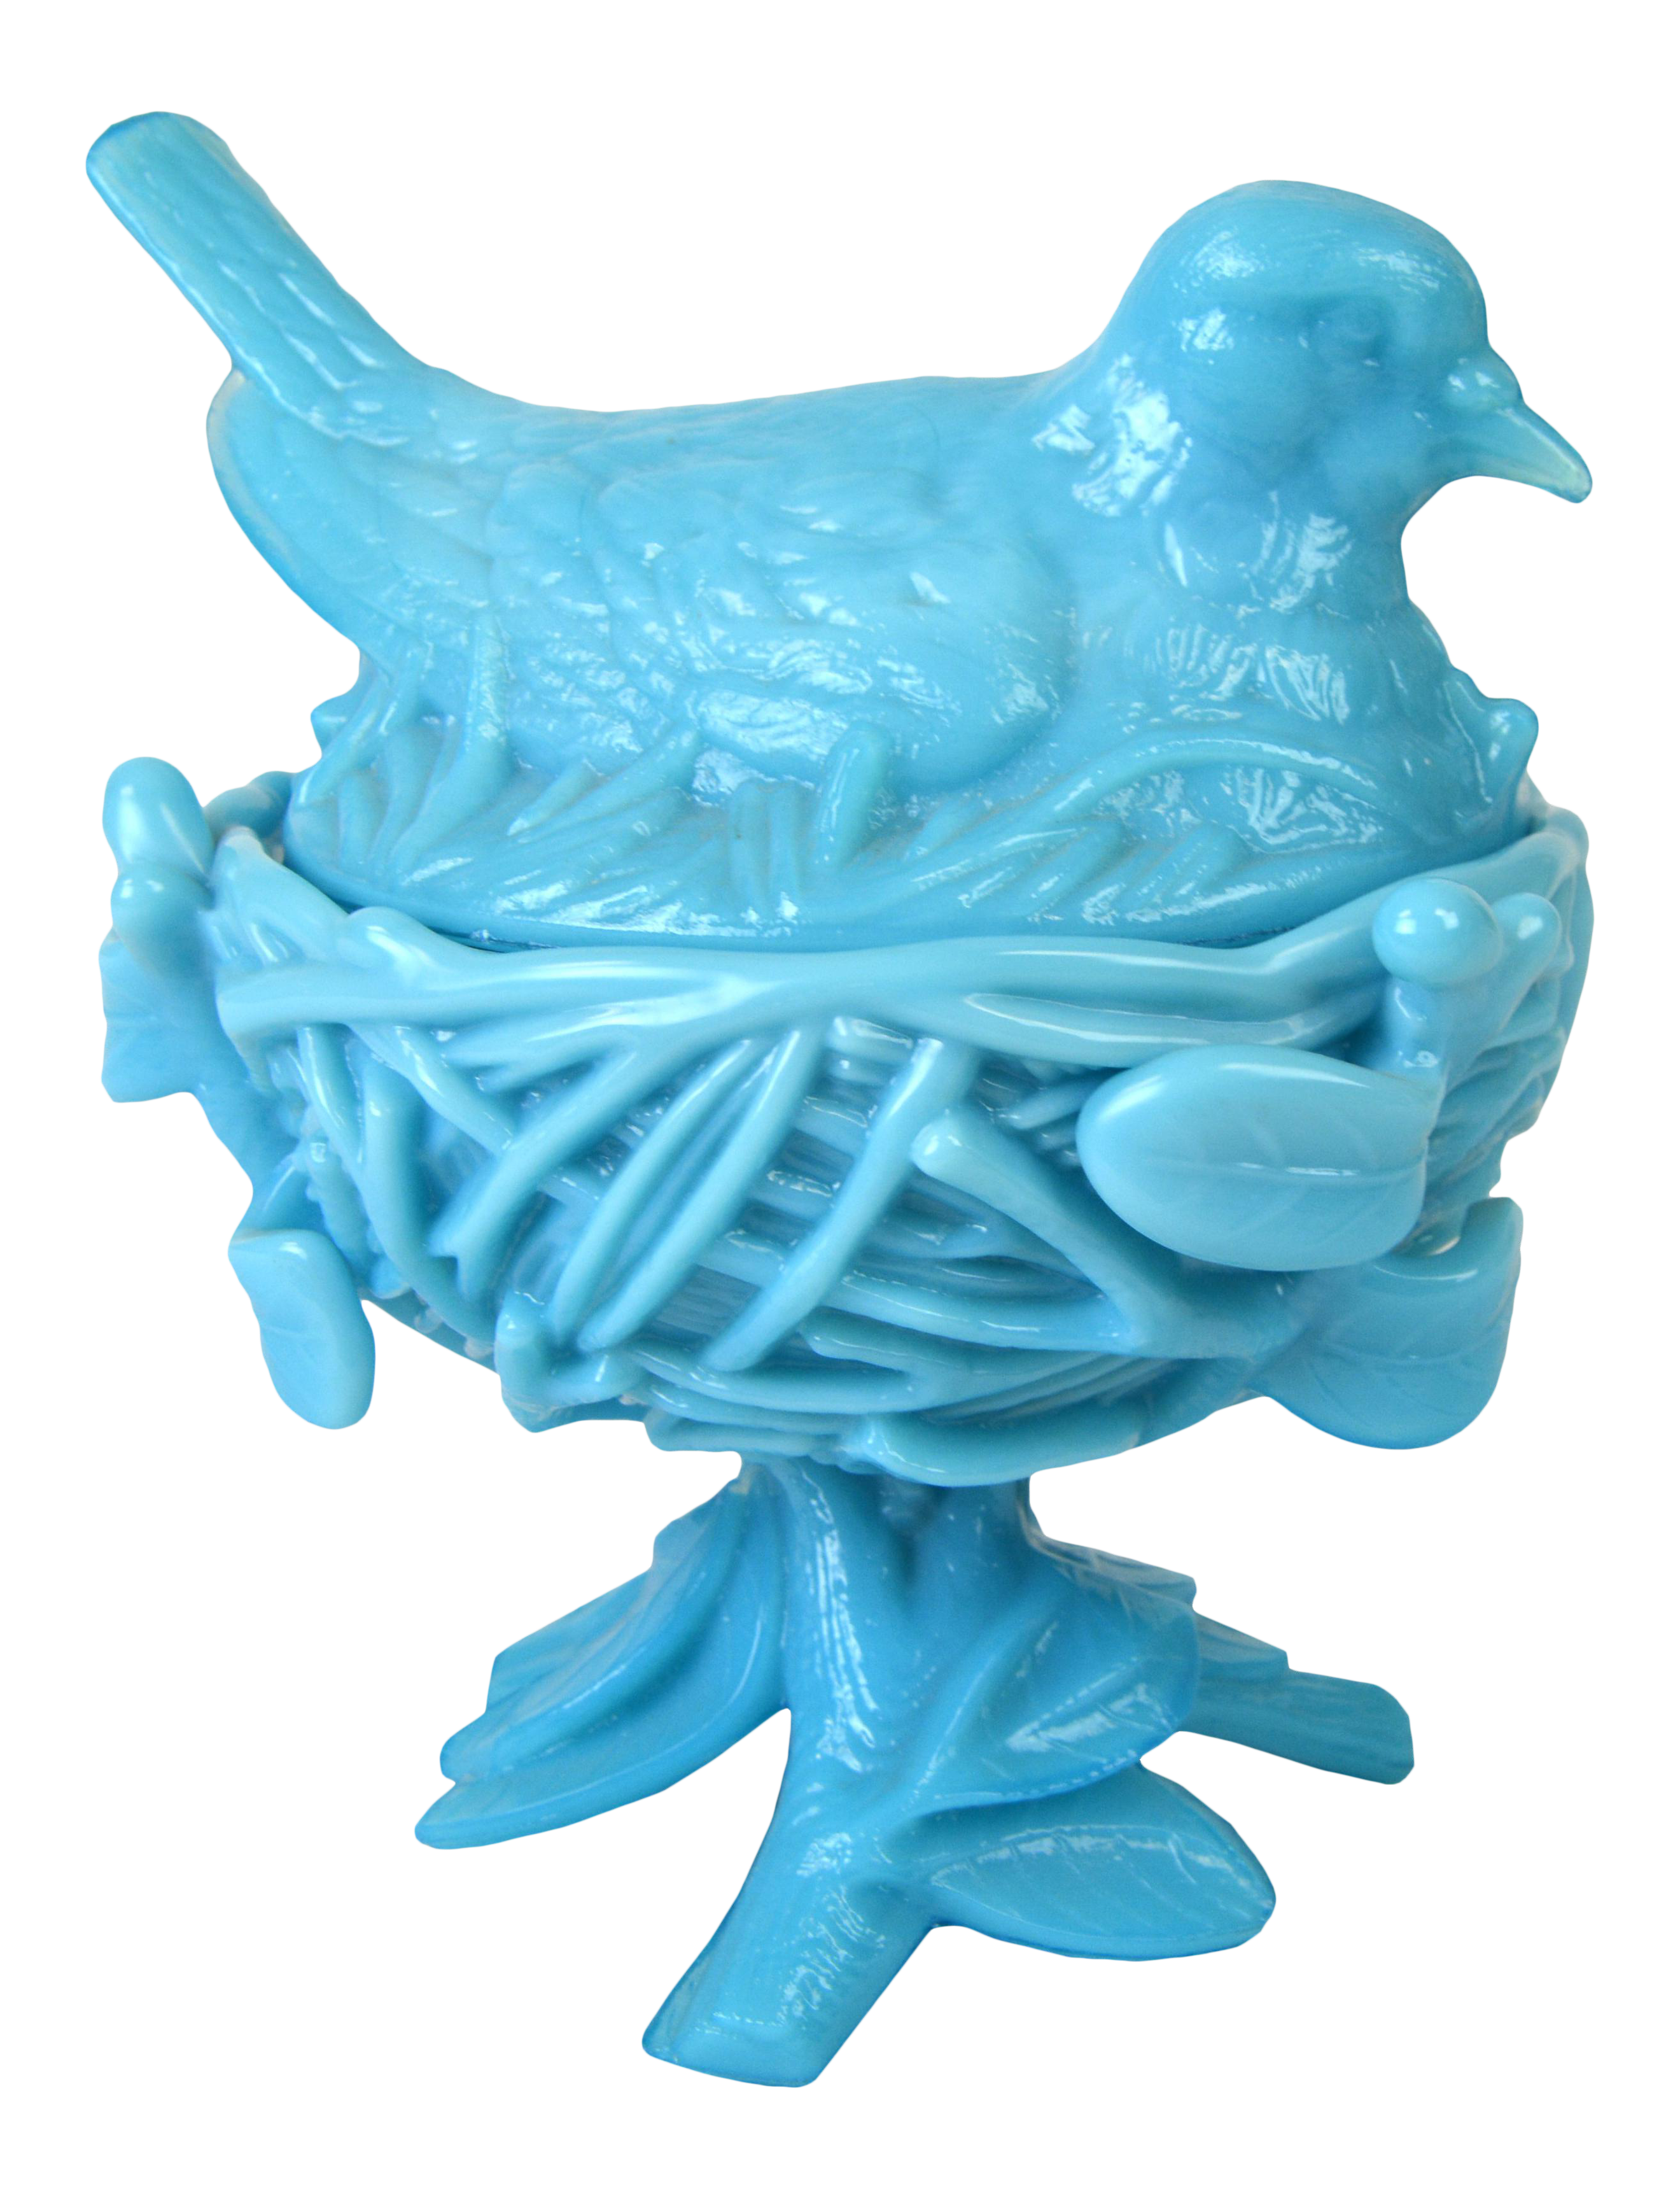 Vintage Turquoise Milk Glass Covered Bird Dish | Chairish